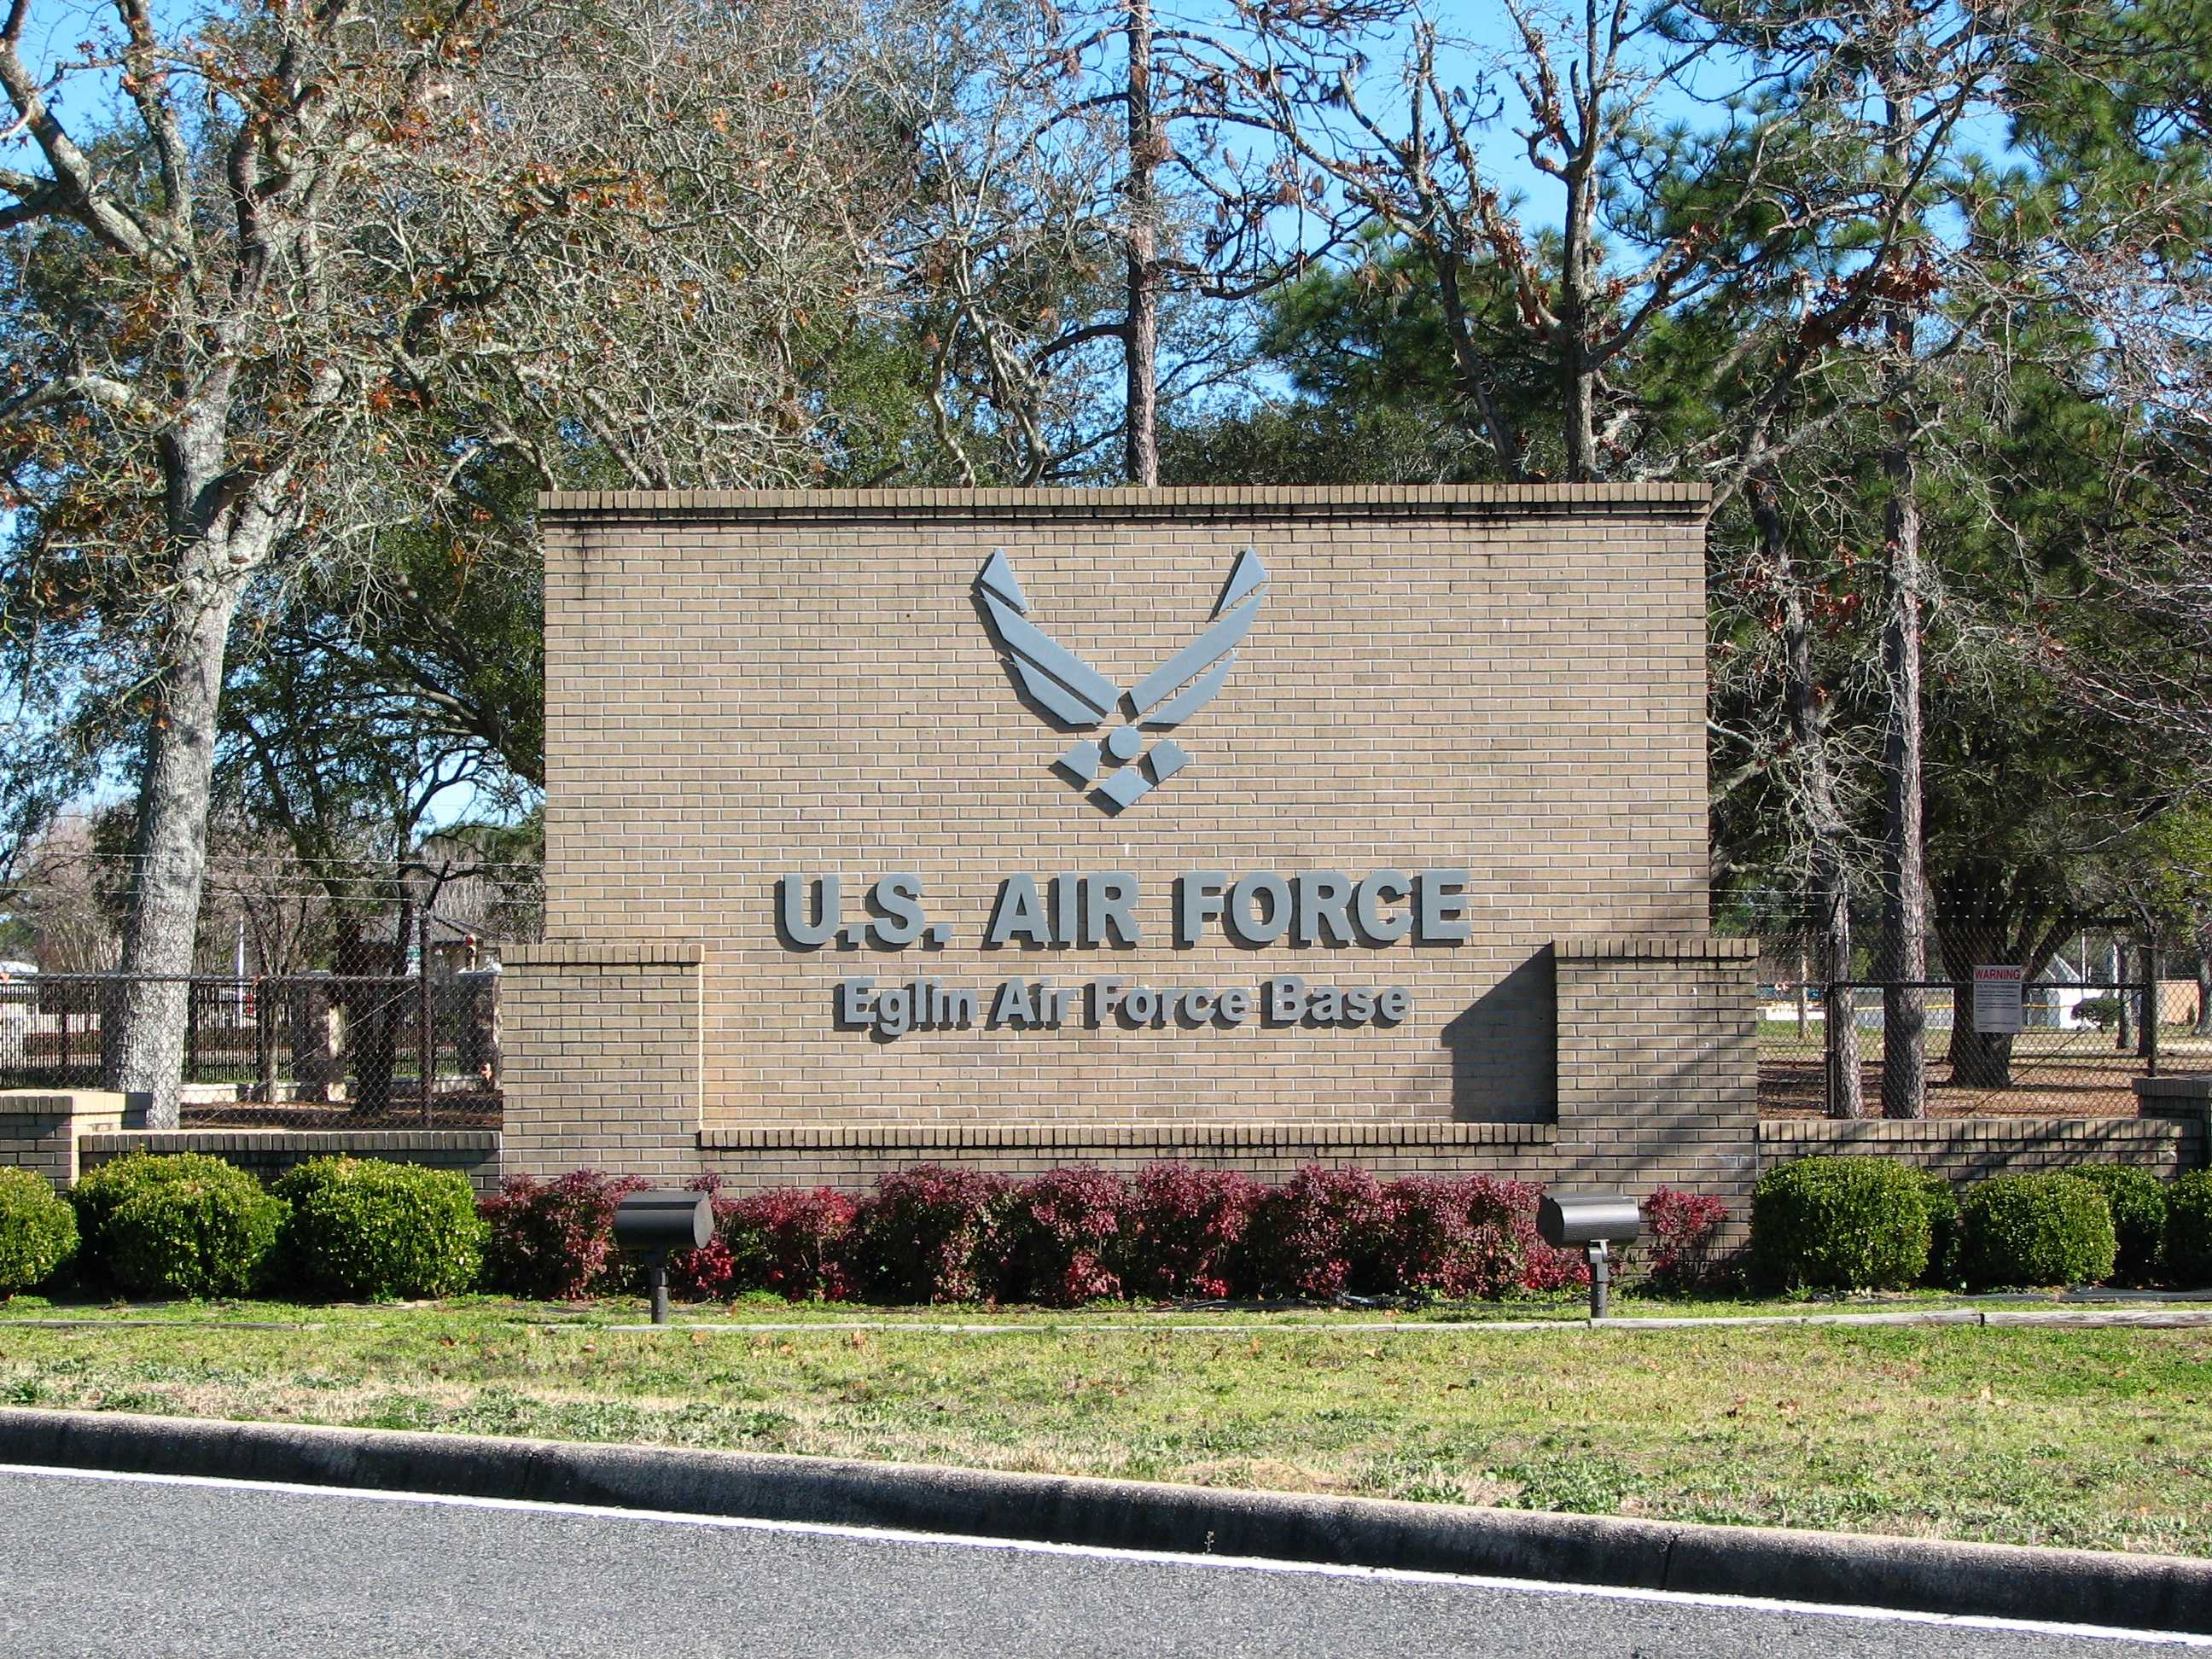 Explosion Causes Evacuation at Eglin Air Force Base in Florida